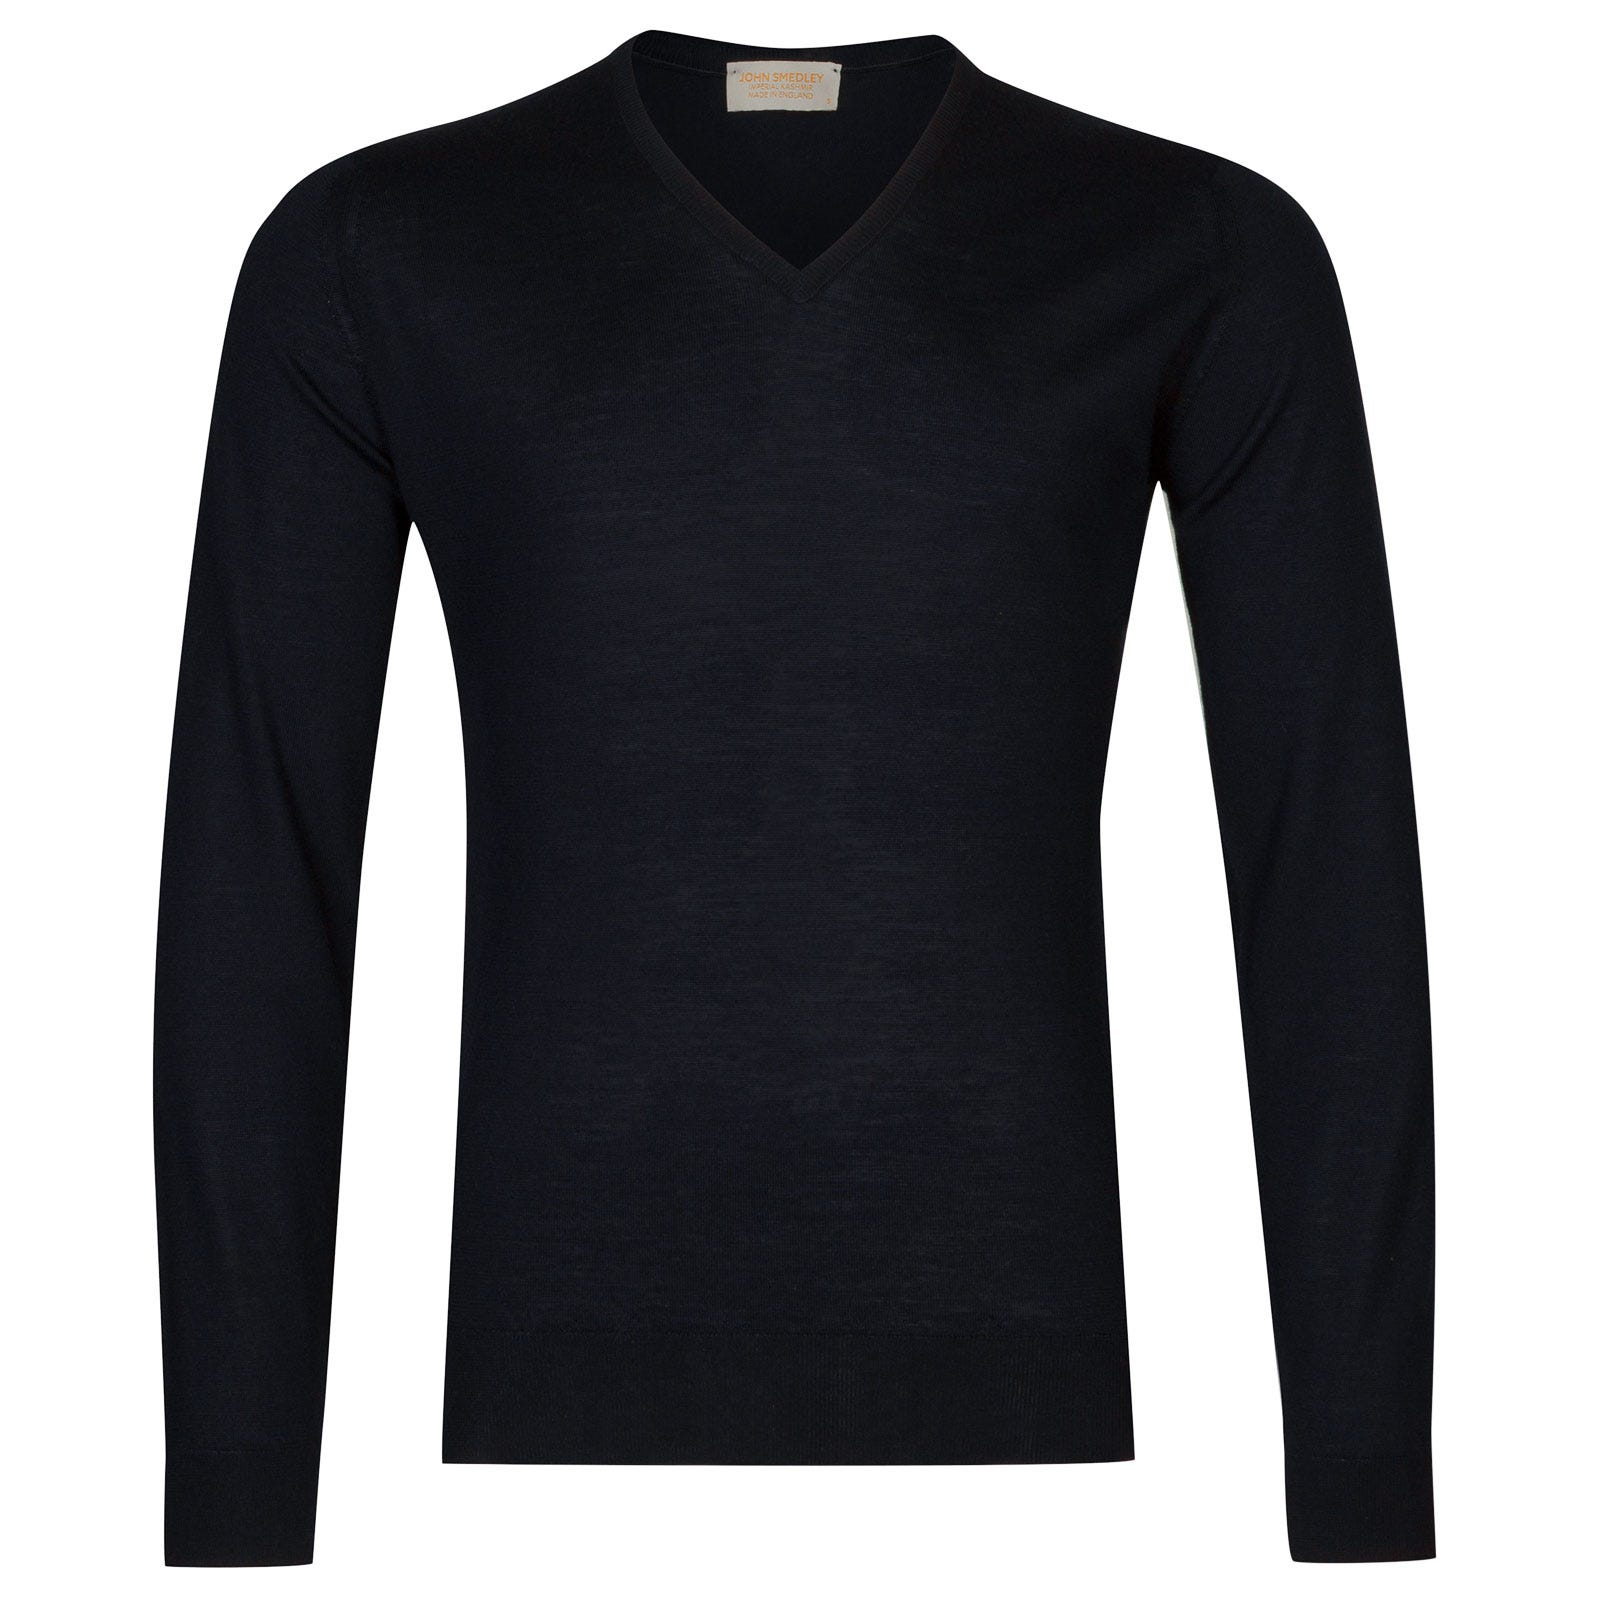 John Smedley newark Merino Wool and Cashmere Pullover in Midnight-S